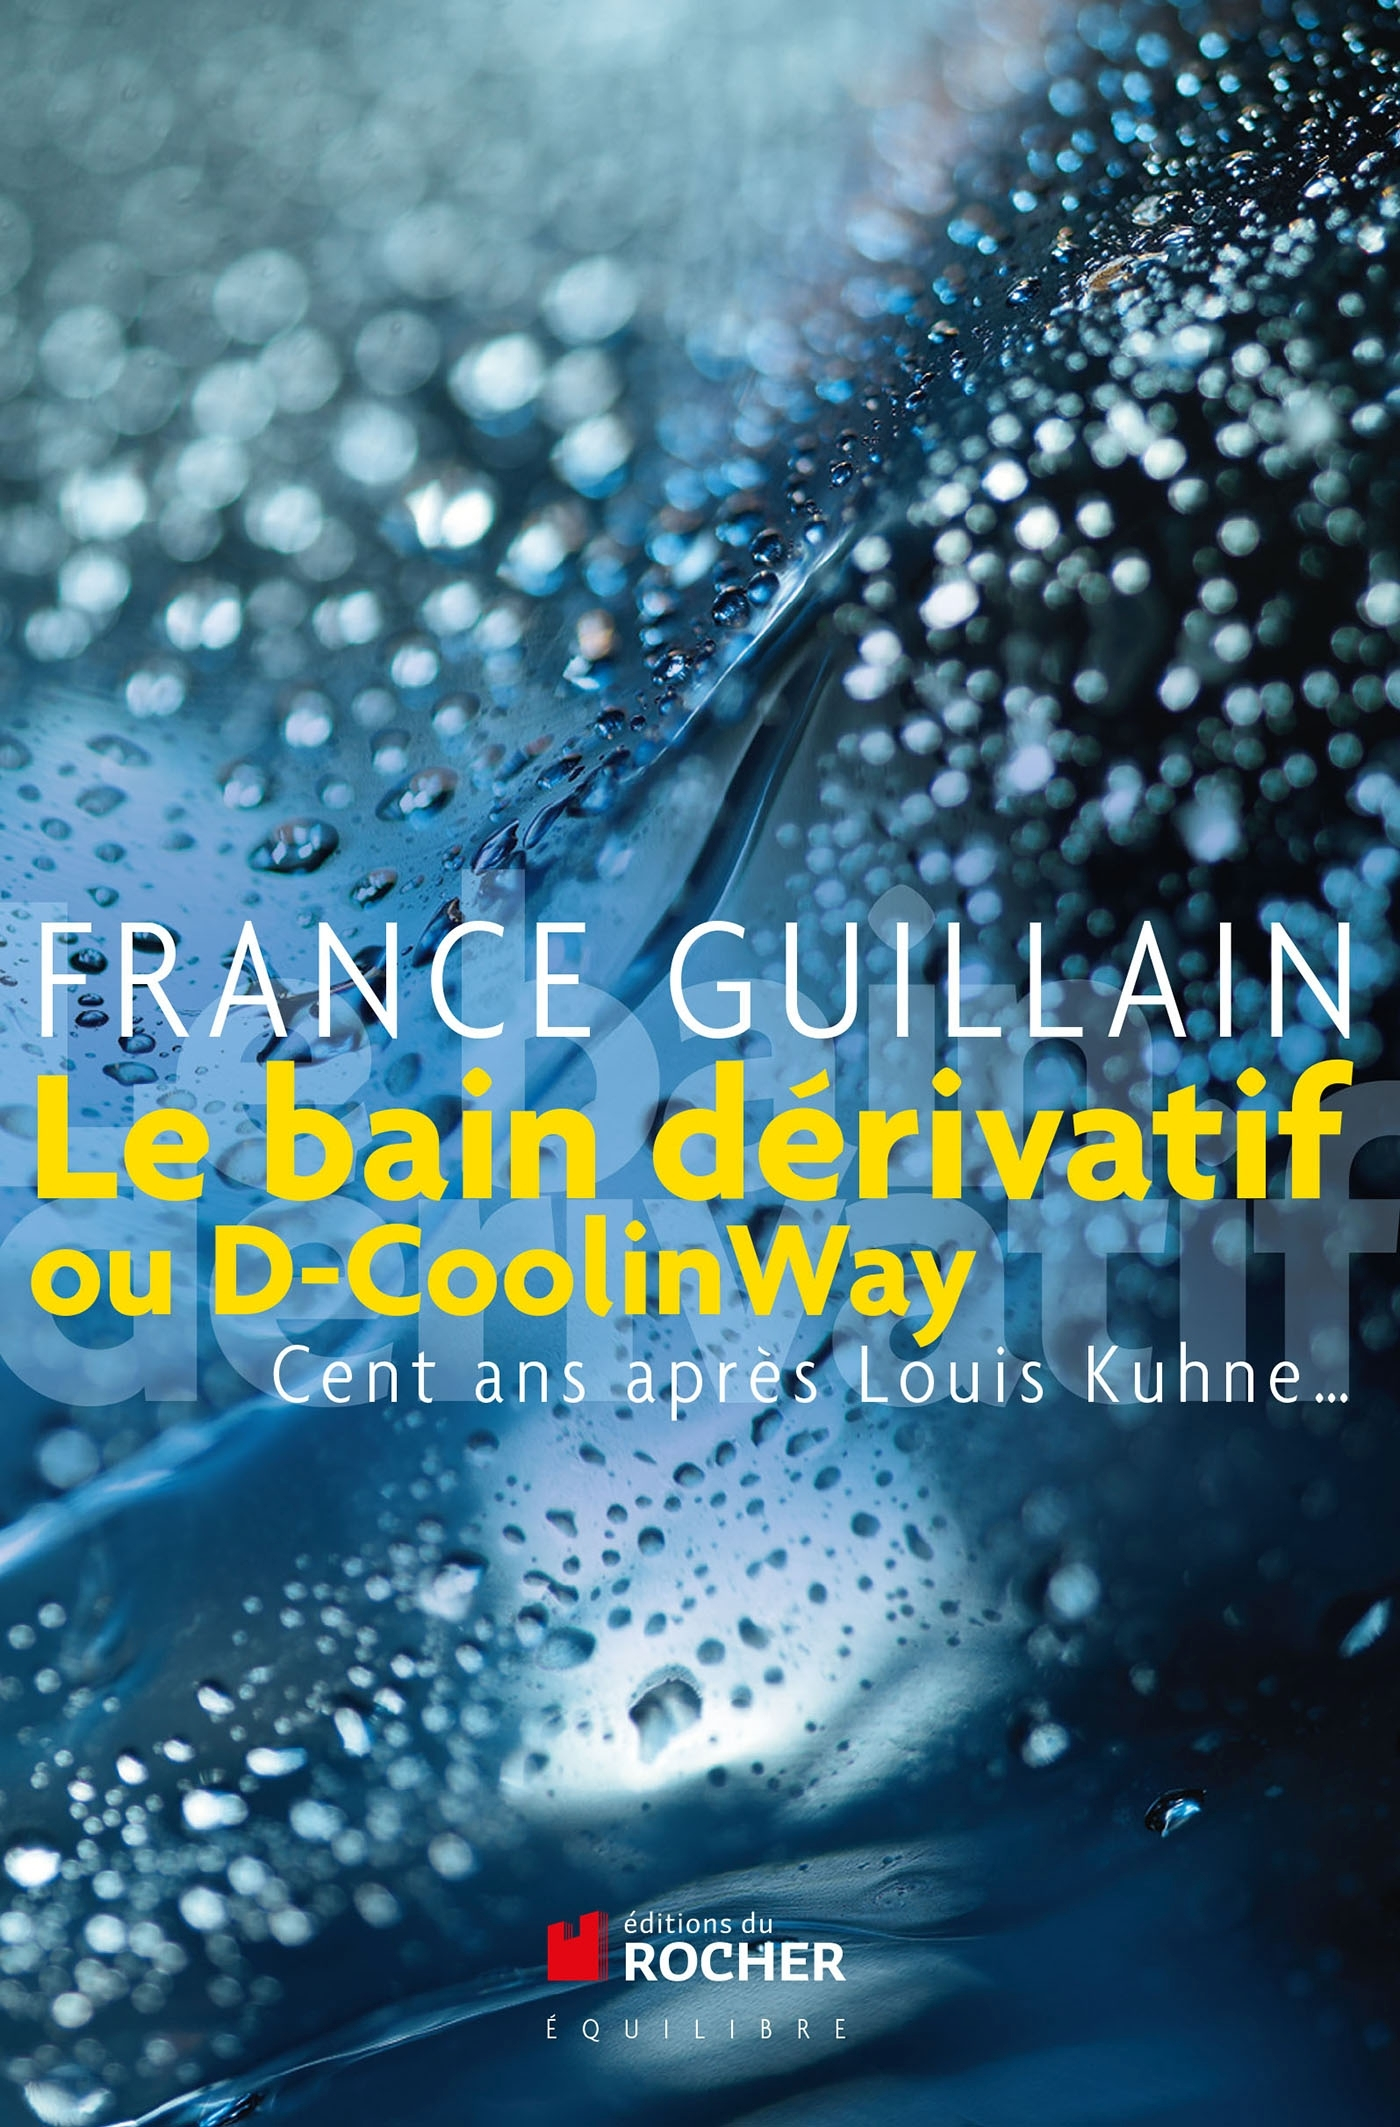 LE BAIN DERIVATIF OU D-COOLINWAY